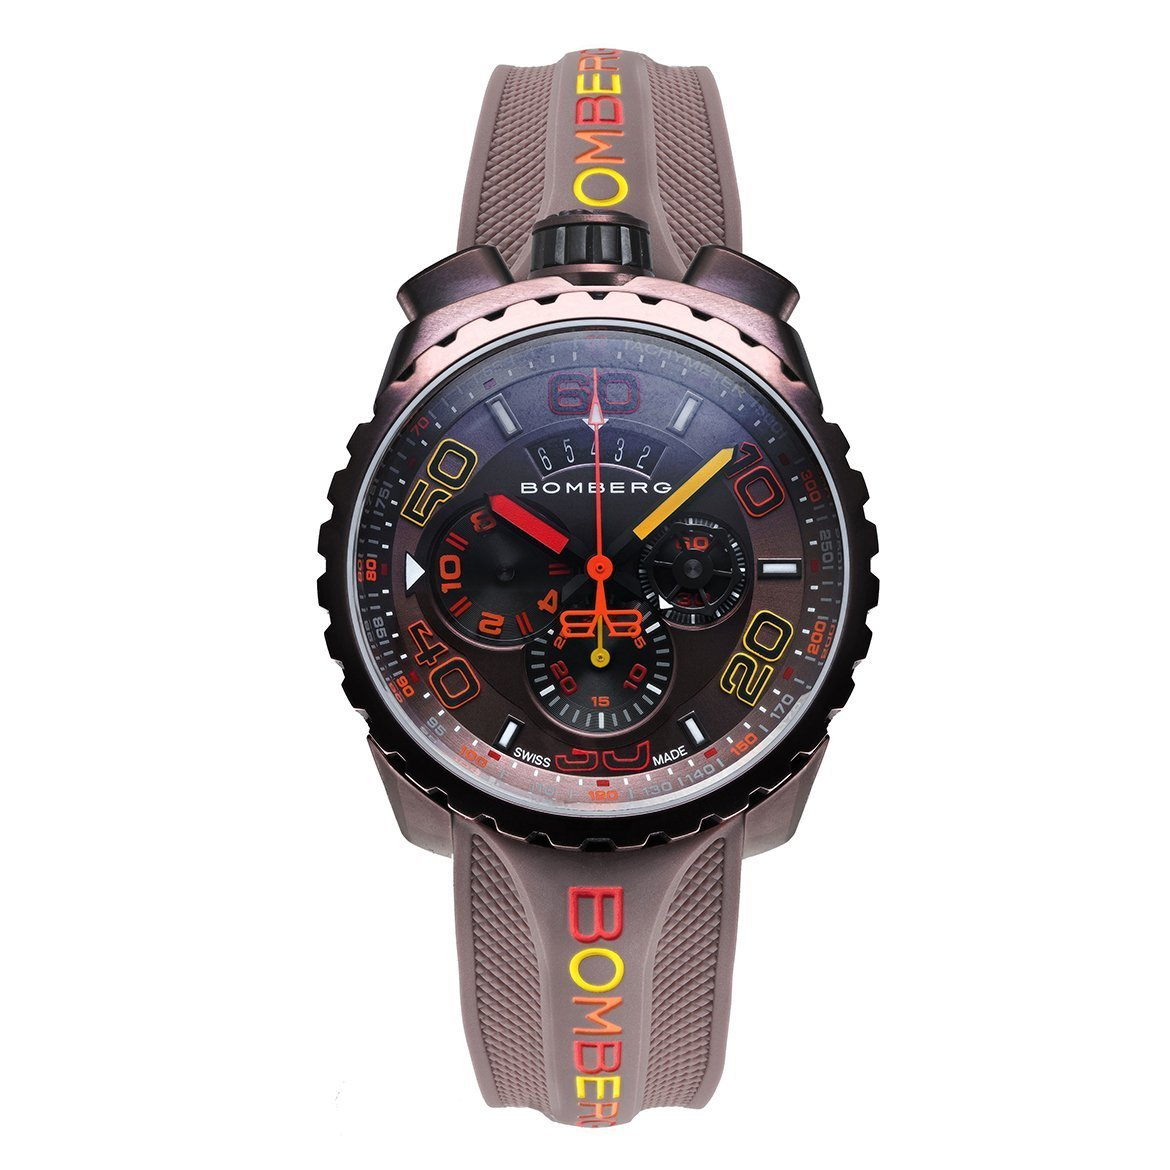 Bomberg BOLT-68 Chronograph Watch Brown PVD